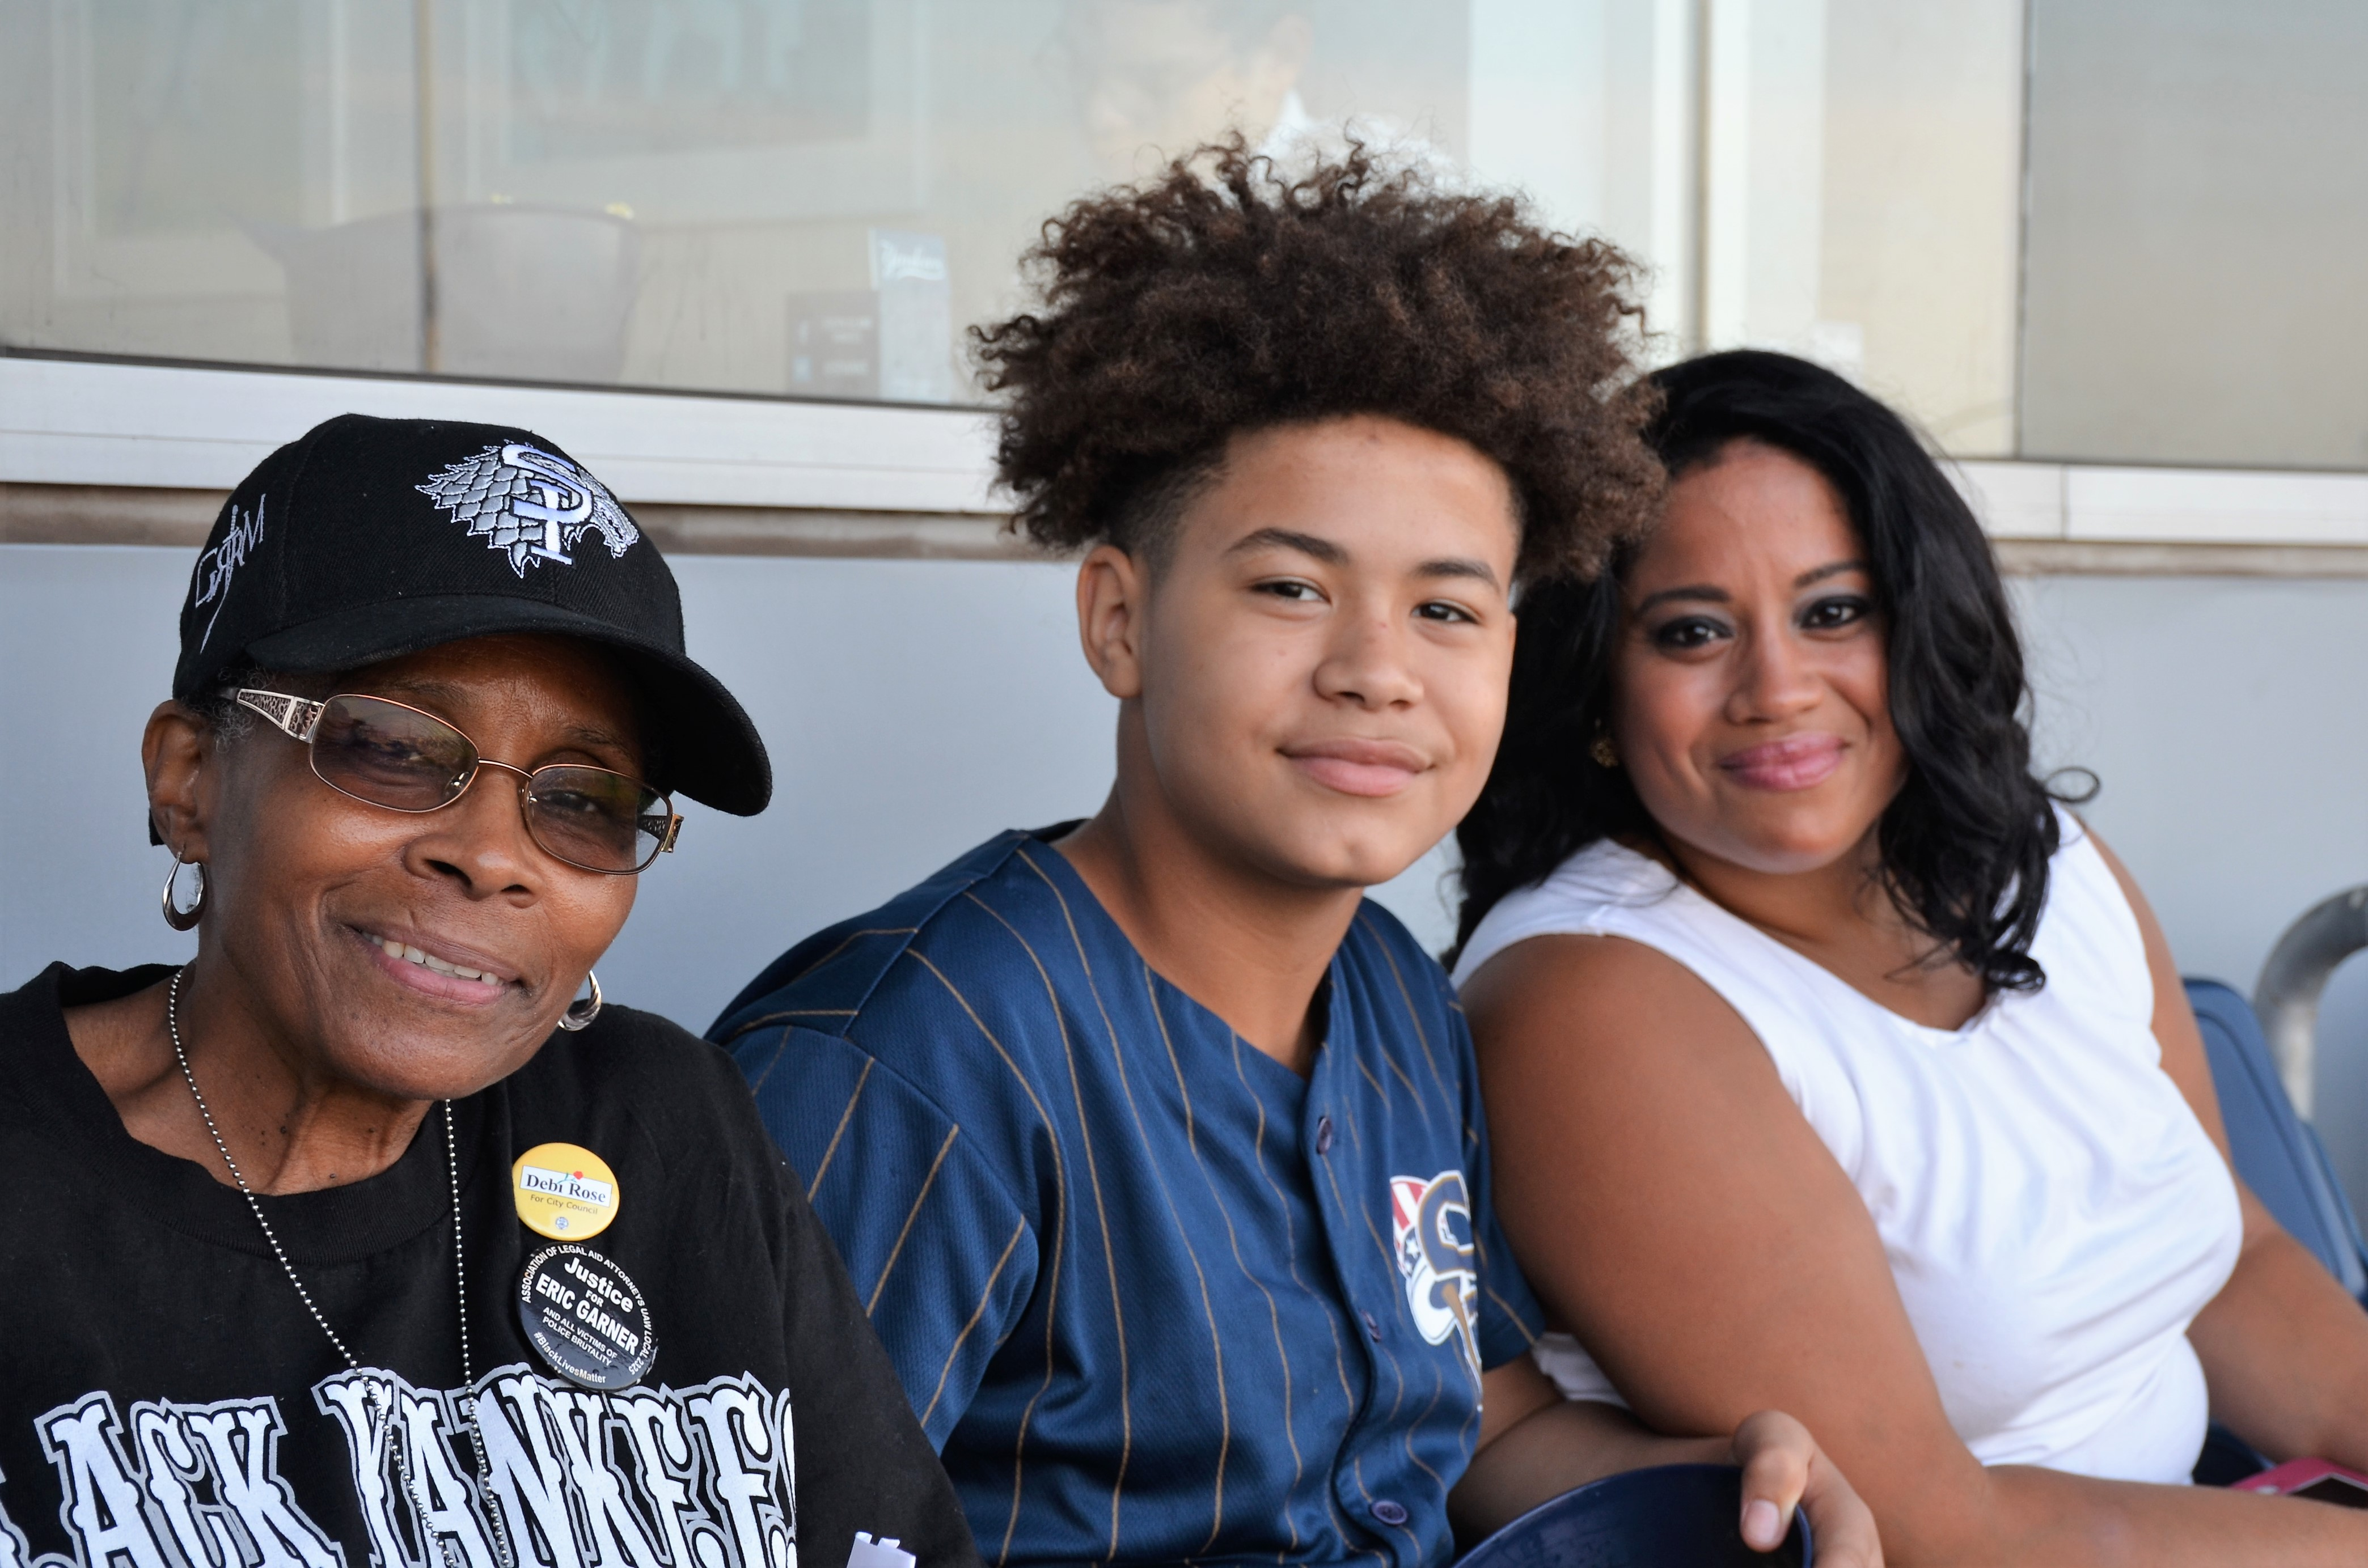 Staten Island Yankees/Con Edison Kid Sean Gomez was proud to be alongside Helen Settles, Unified Sports Activities director and his mom Chasity Jarrels.